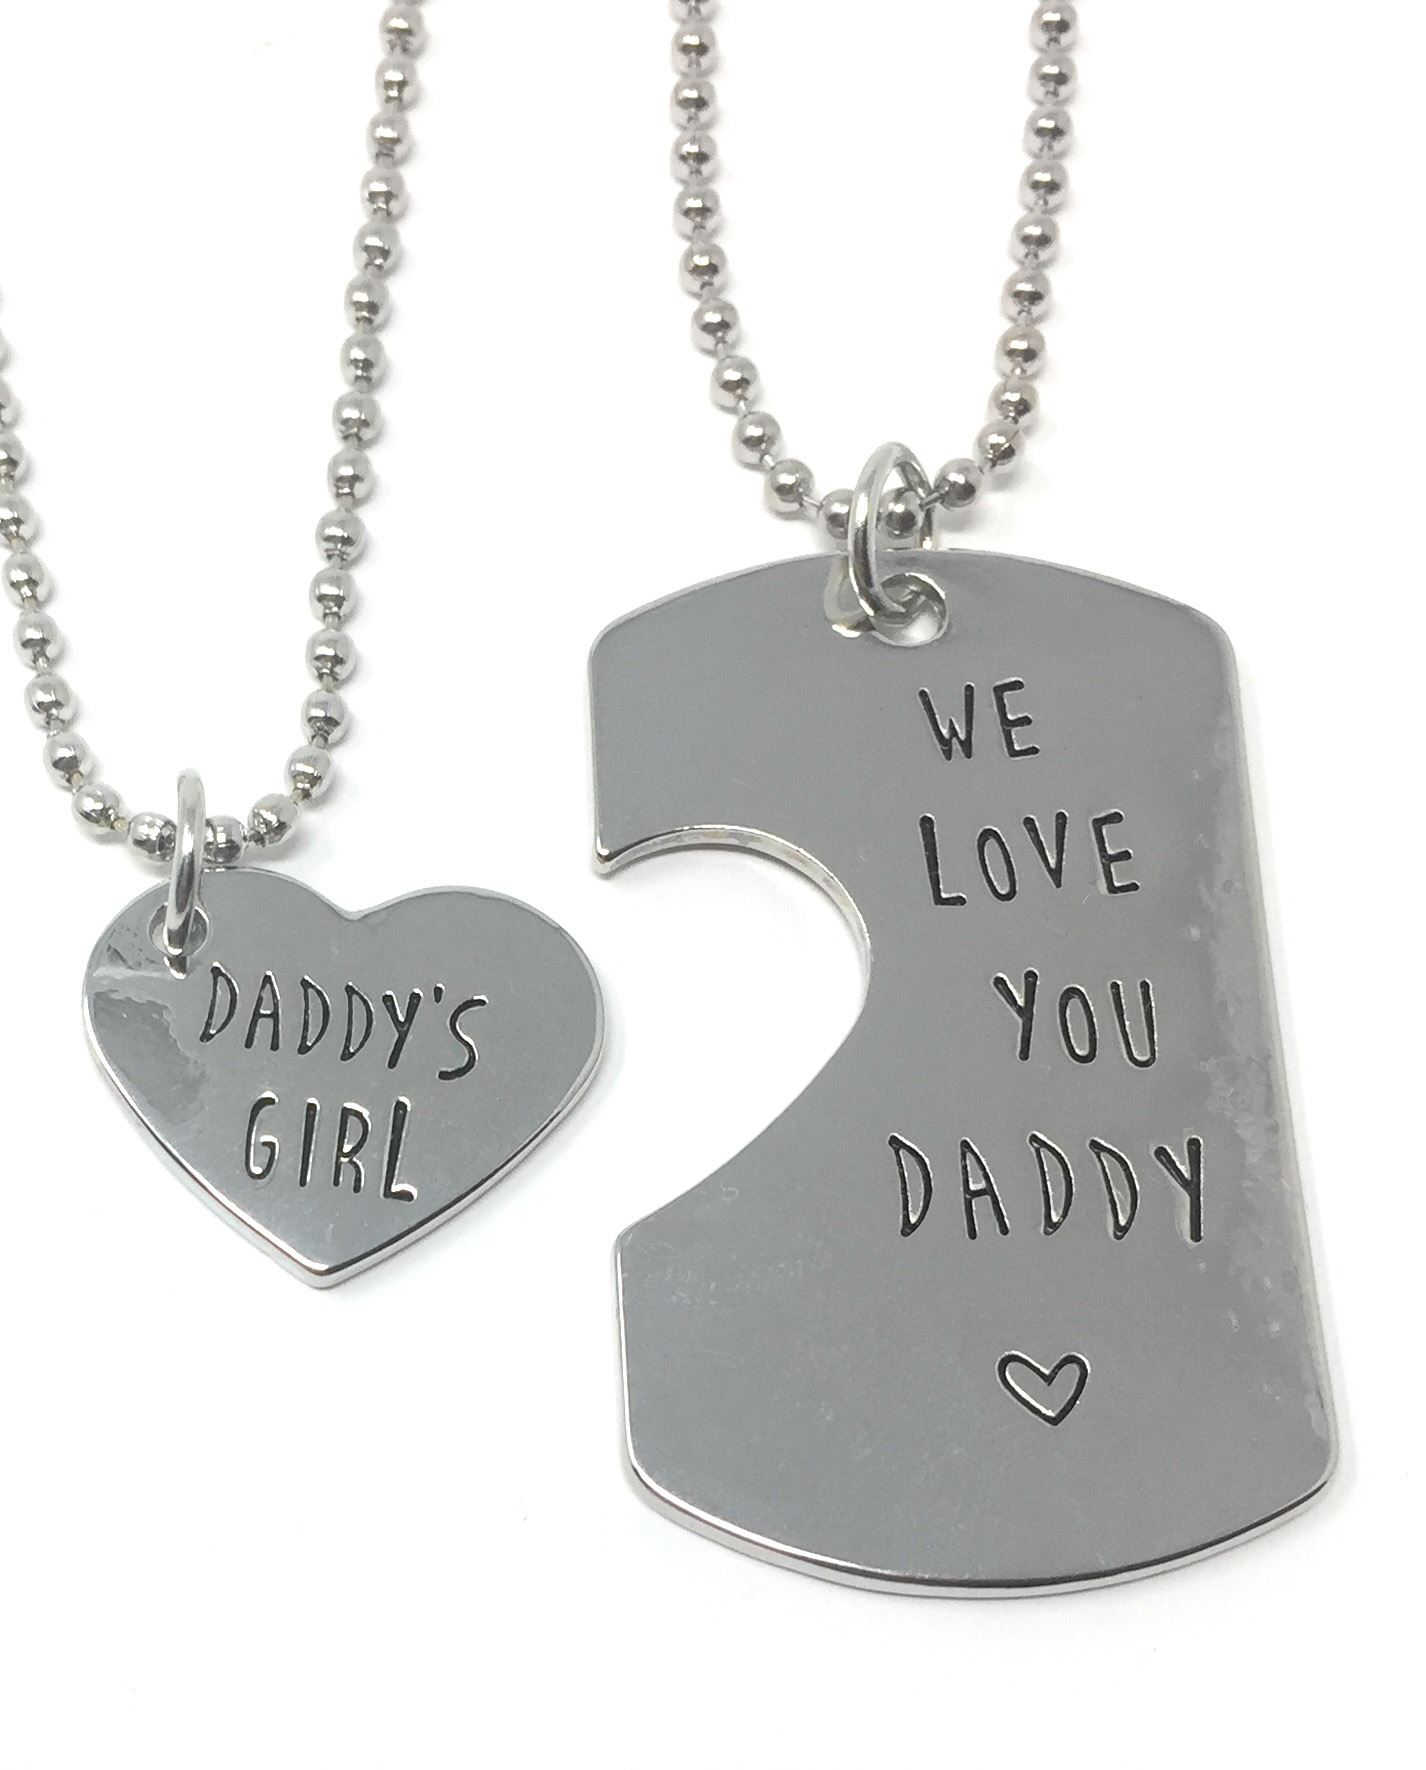 *UK* 925 SILVER PLT /'WE LOVE YOU DADDY/' /'DADDY/'S GIRL/' ENGRAVED KEYRING//NECKLACE